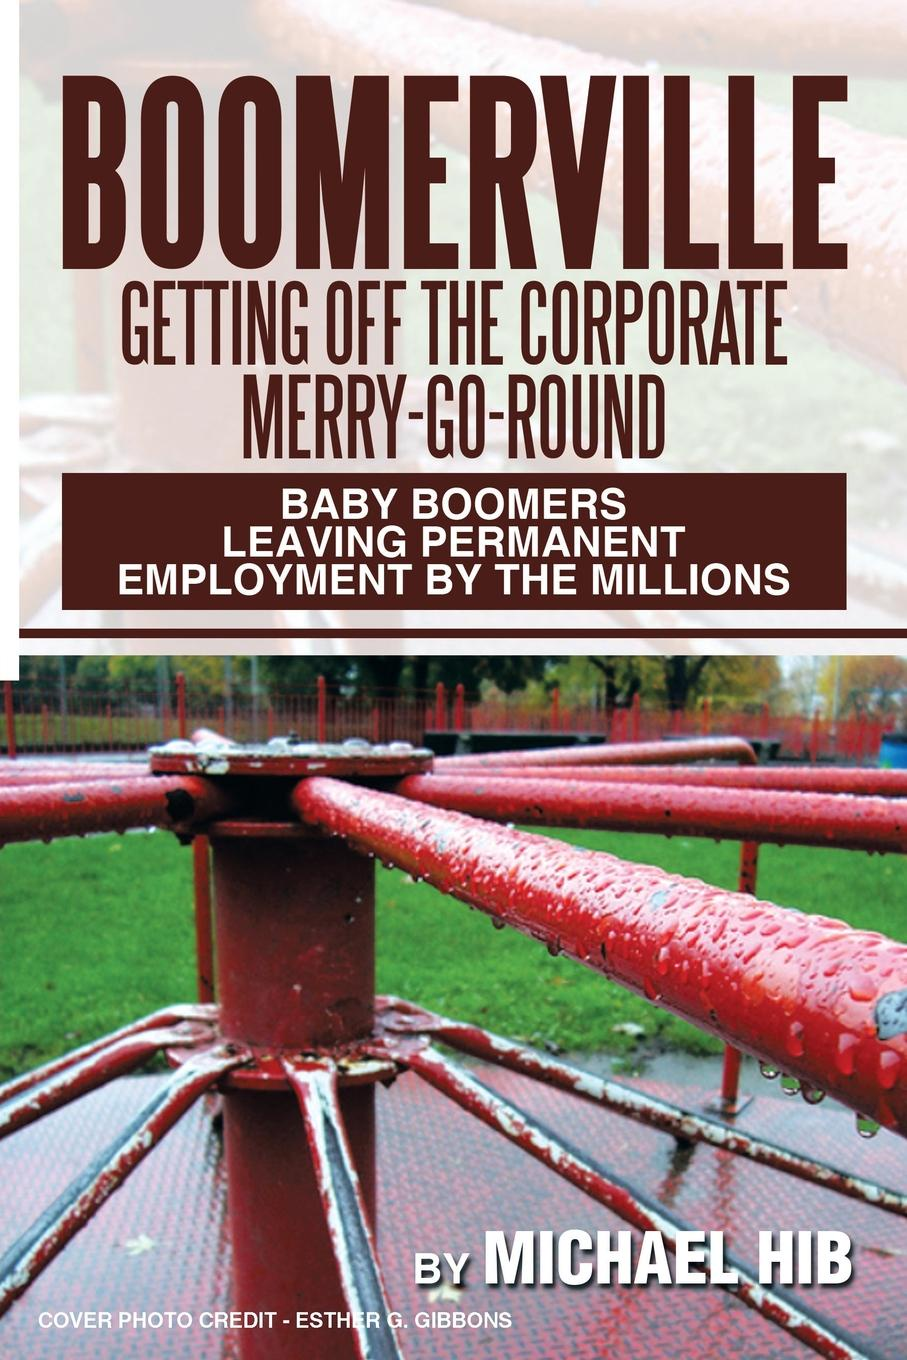 Michael Hib Boomerville. Getting Off the Corporate Merry-Go-Round: Baby Boomers Leaving Permanent Employment by Millions